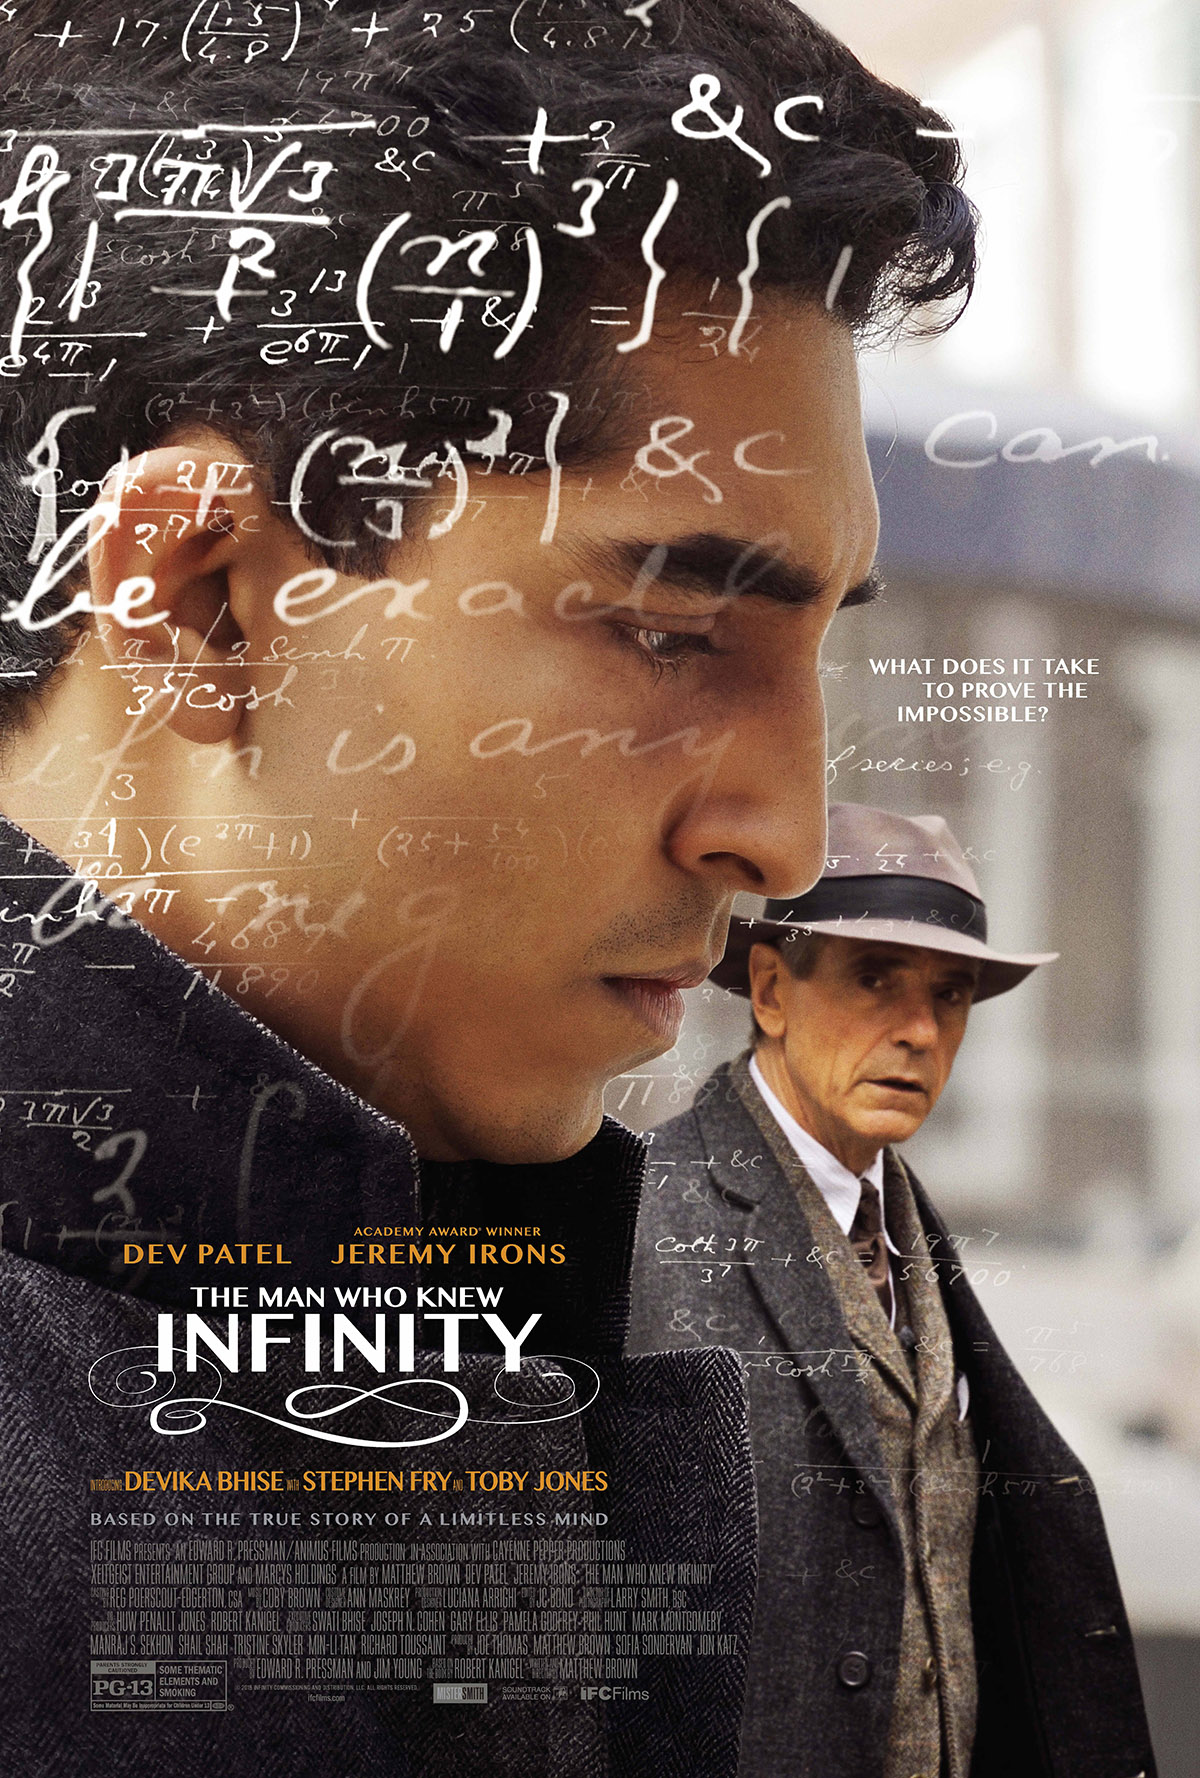 The Man Who Knew Infinity (2015) Hindi Dubbed 720p BluRay 1GB Free Download